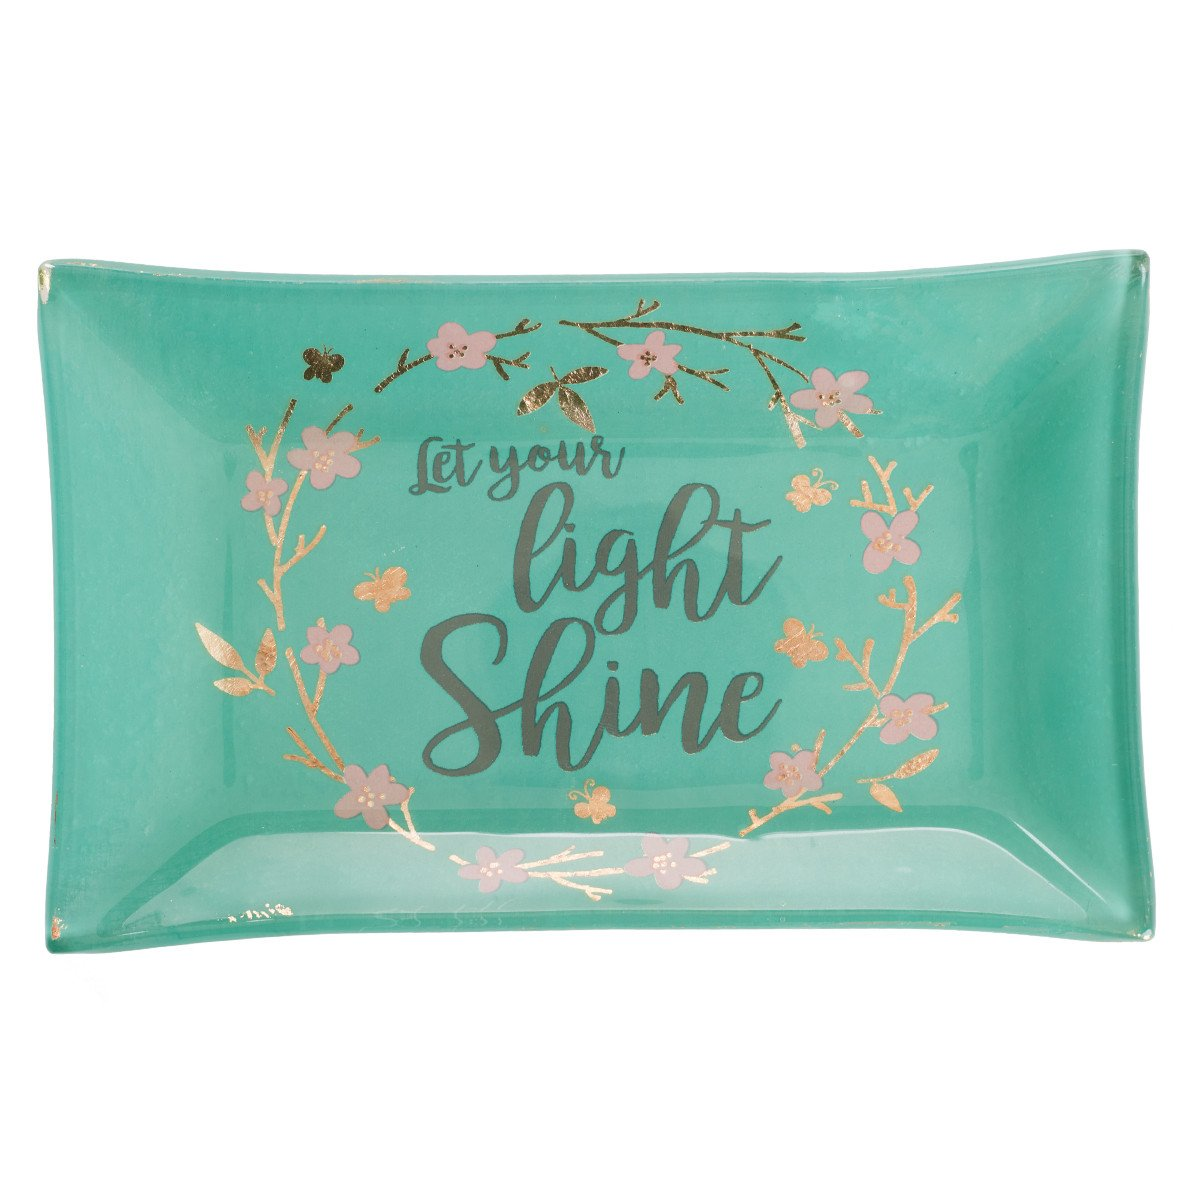 Christian Art Gifts Let Your Light Shine Glass Trinket Tray in Teal, Sparkle Collection